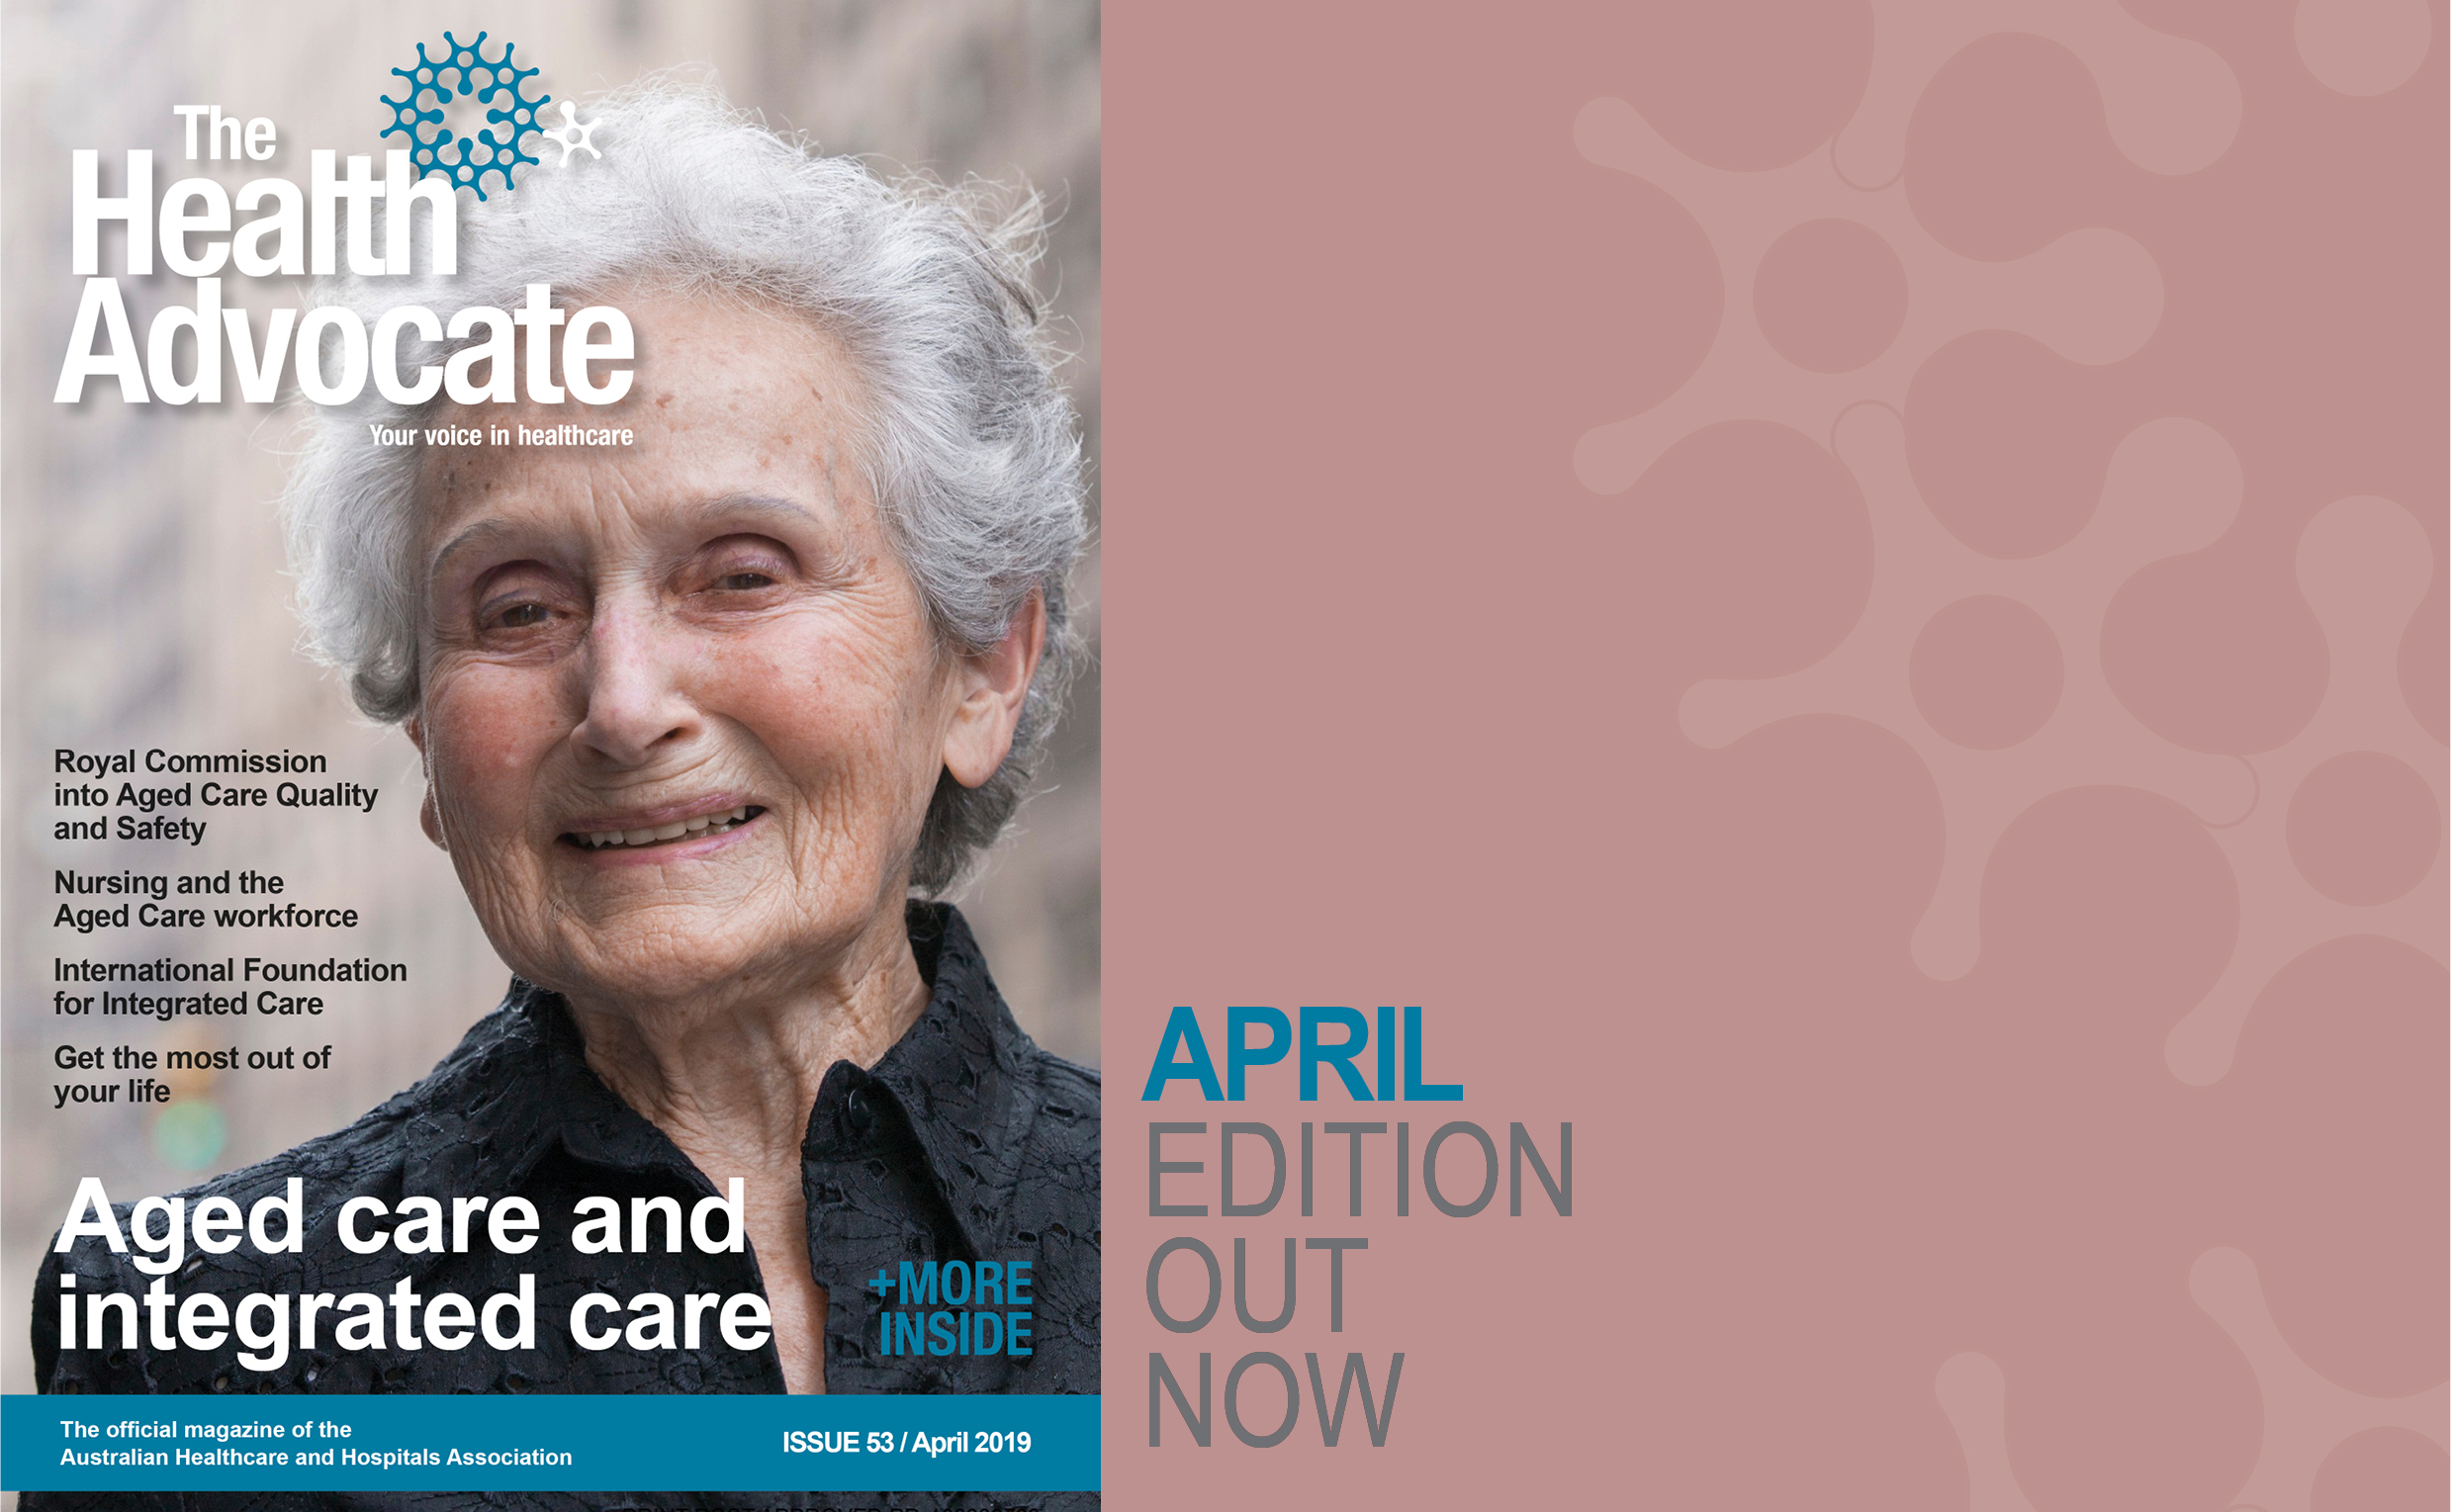 The Health Advocate - April 2019